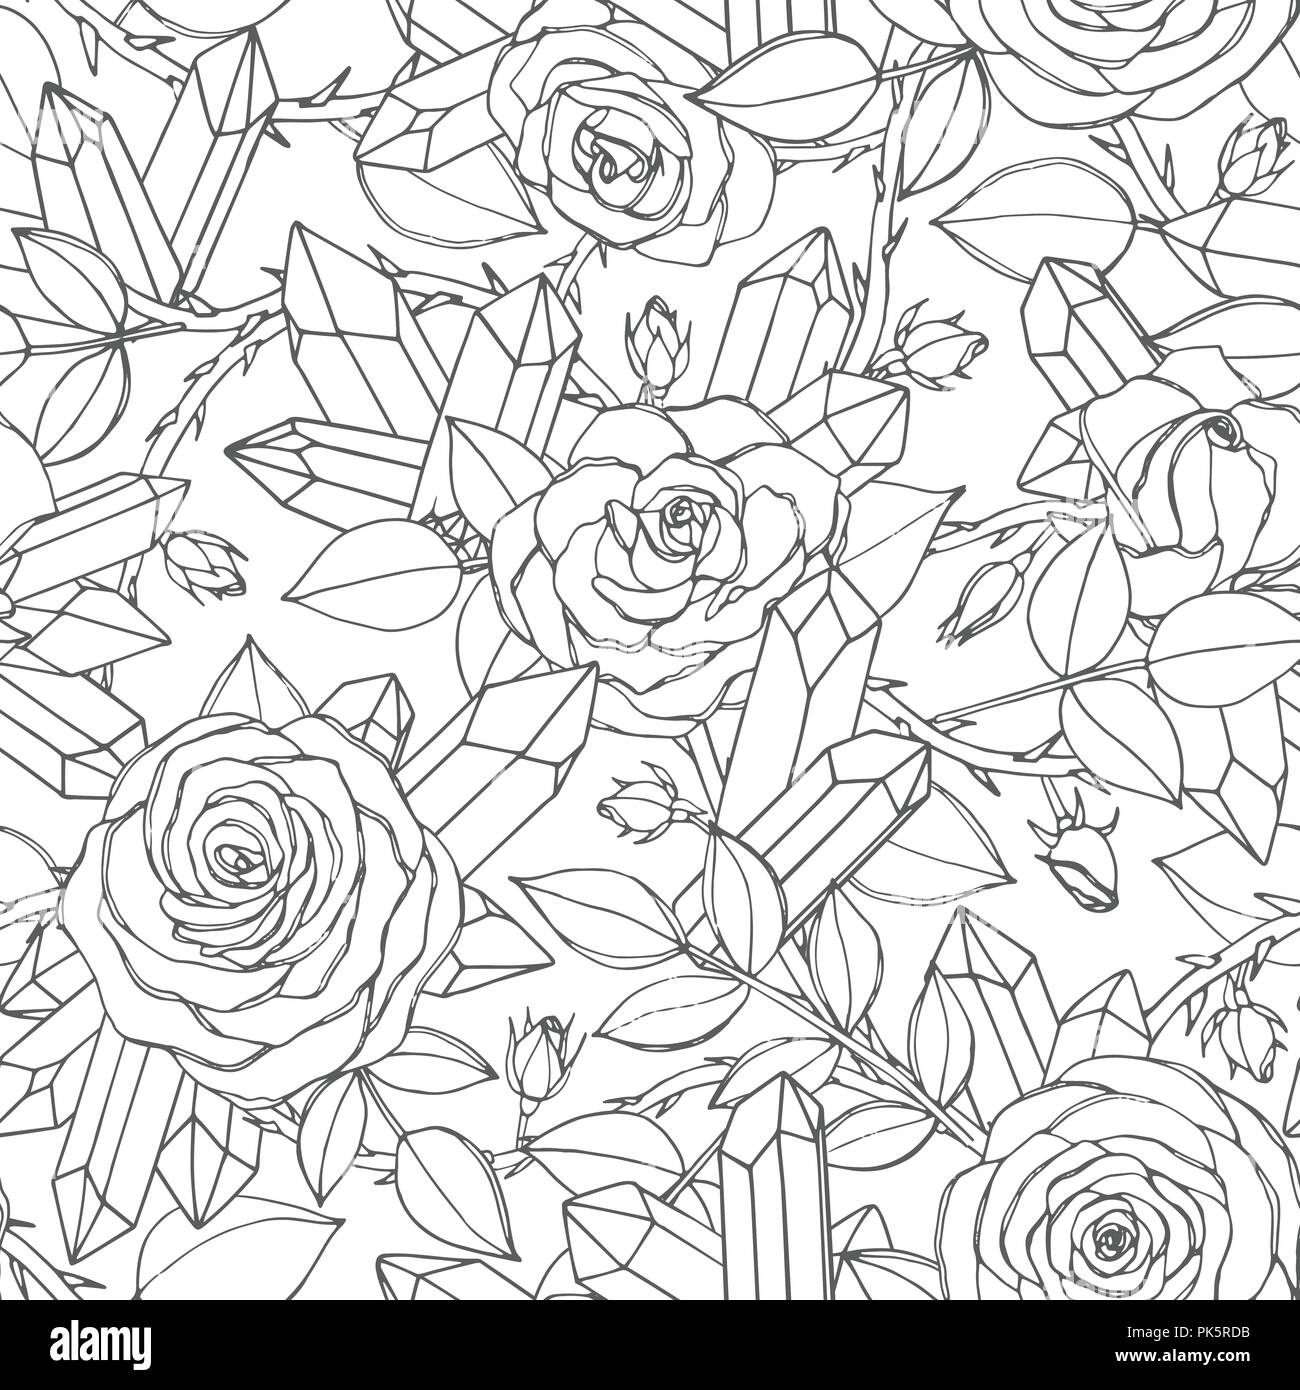 Vector hand drawn seamless pattern of rose flowers with buds, leaves, thorny stems and crystals line art on the white background. Floral ornament of b - Stock Image